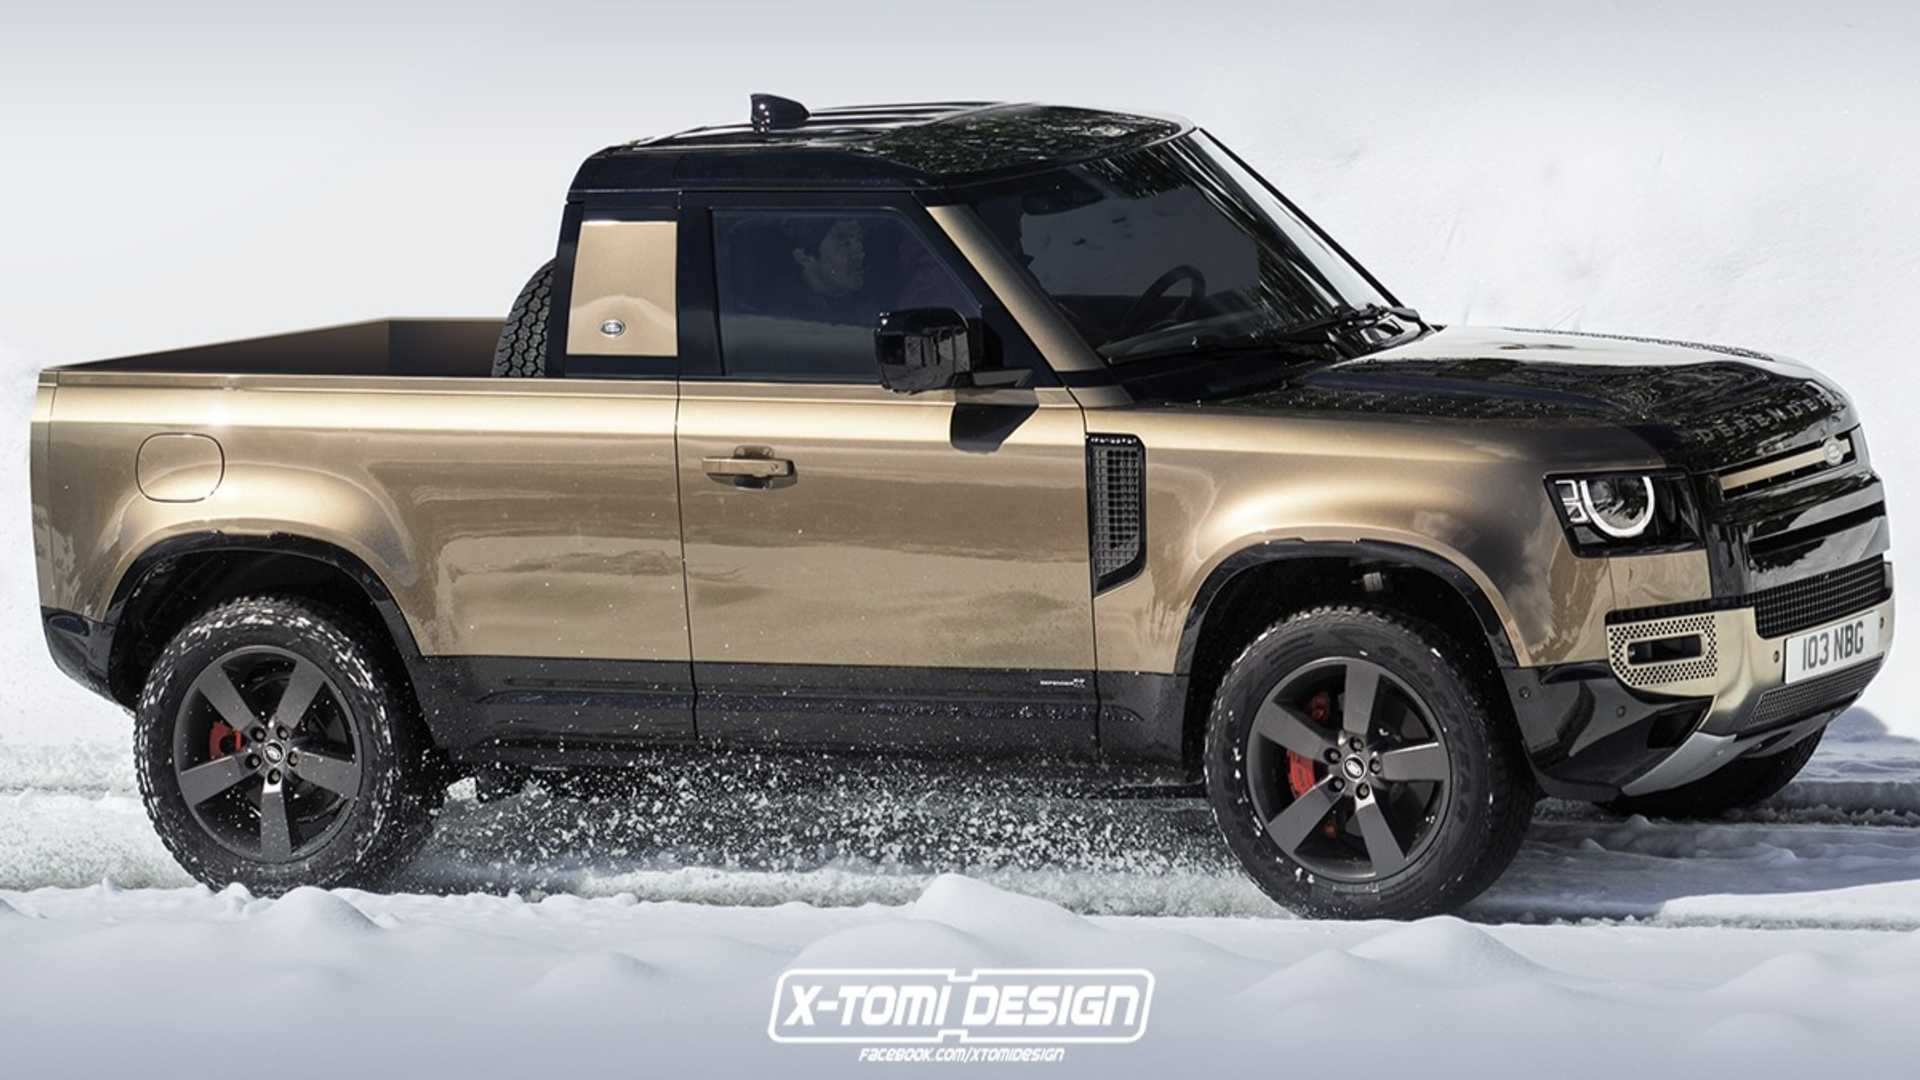 Defender Pickup Rendering Is The Rad Truck Land Rover Won't Make